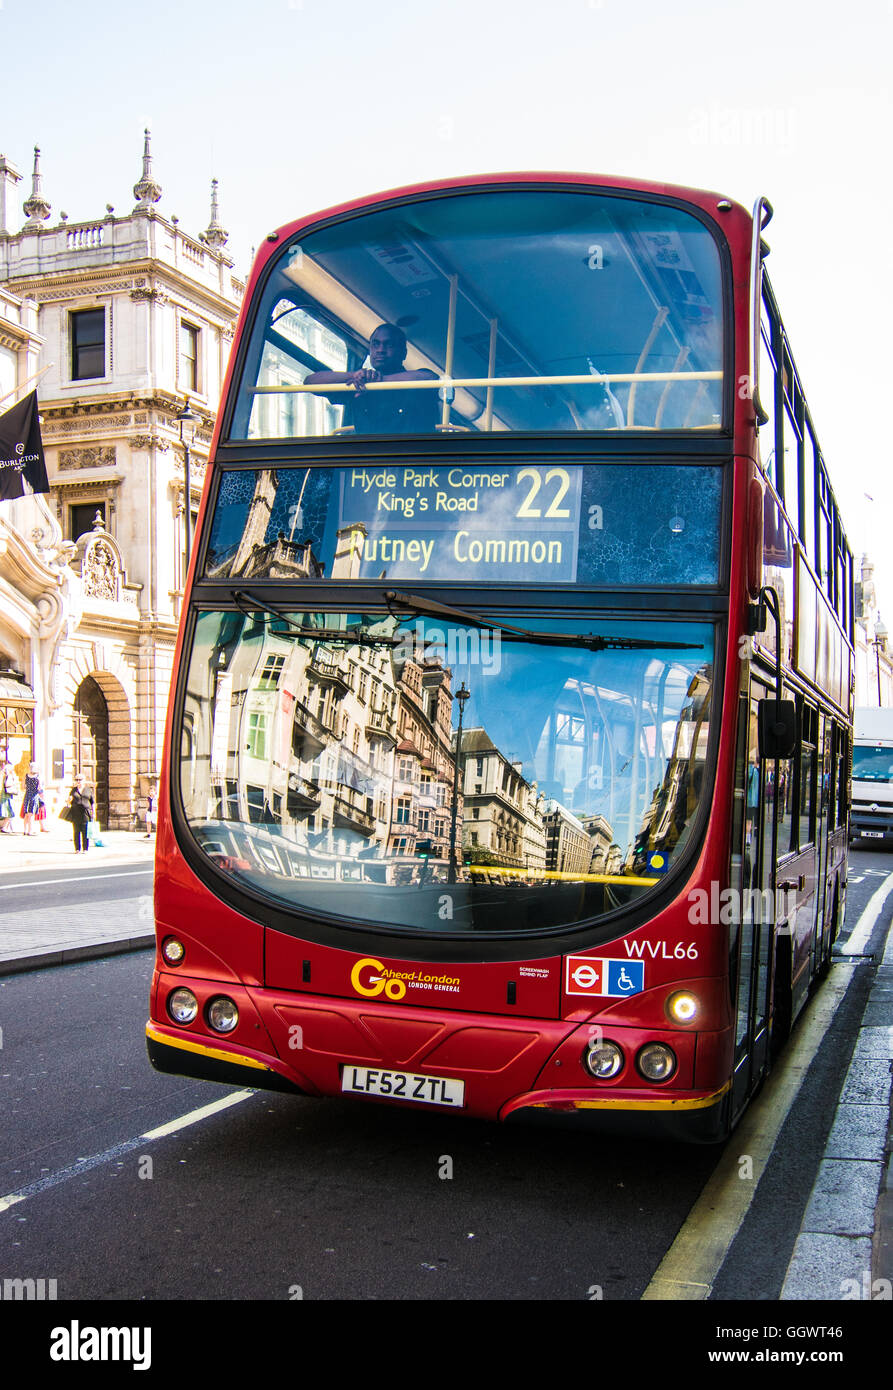 Reflections of Piccadilly Street on bus, London, UK - Stock Image